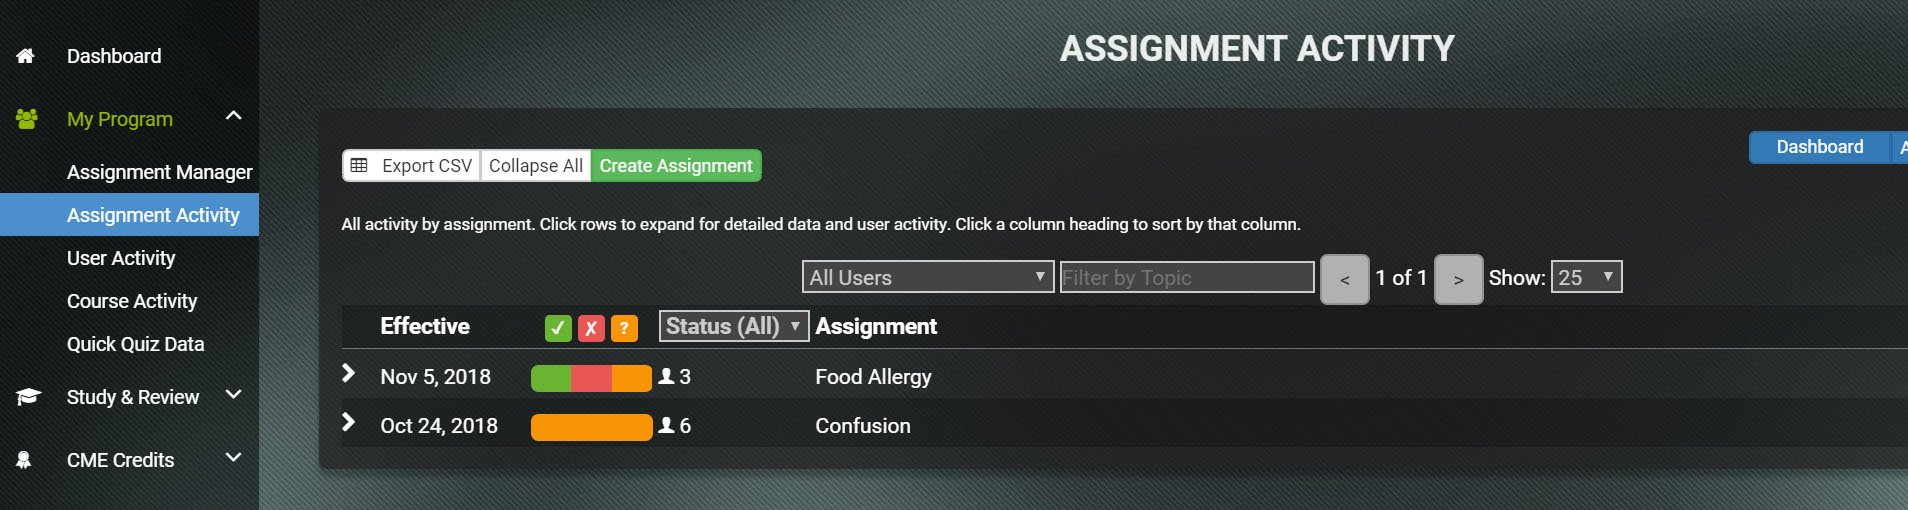 assignment activity, assignment scores, assignment averages